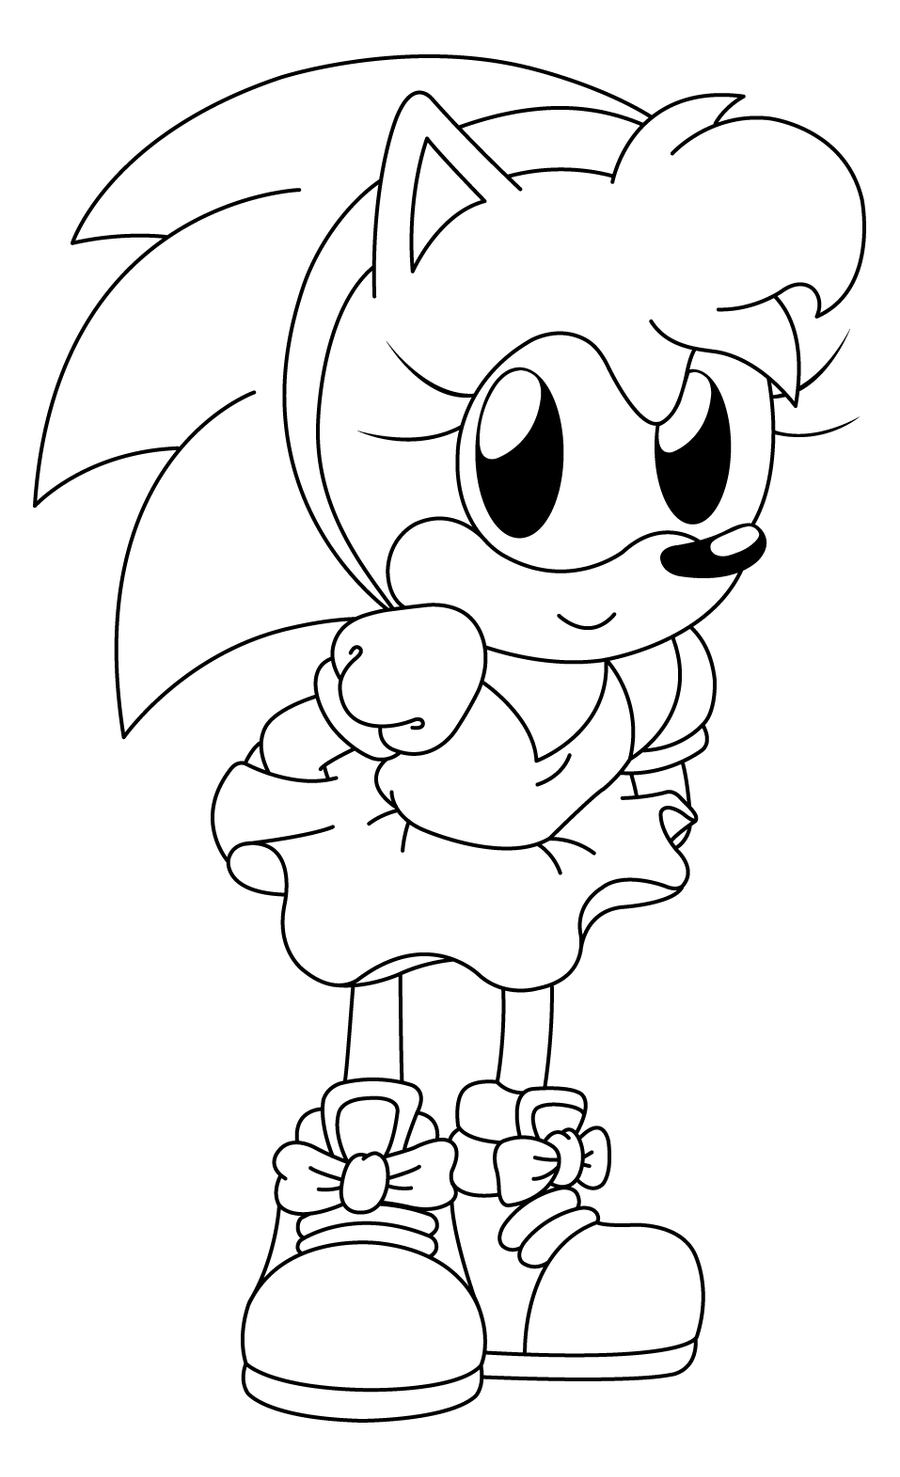 amy rose coloring pages amy rose coloring pages to download and print for free coloring rose amy pages